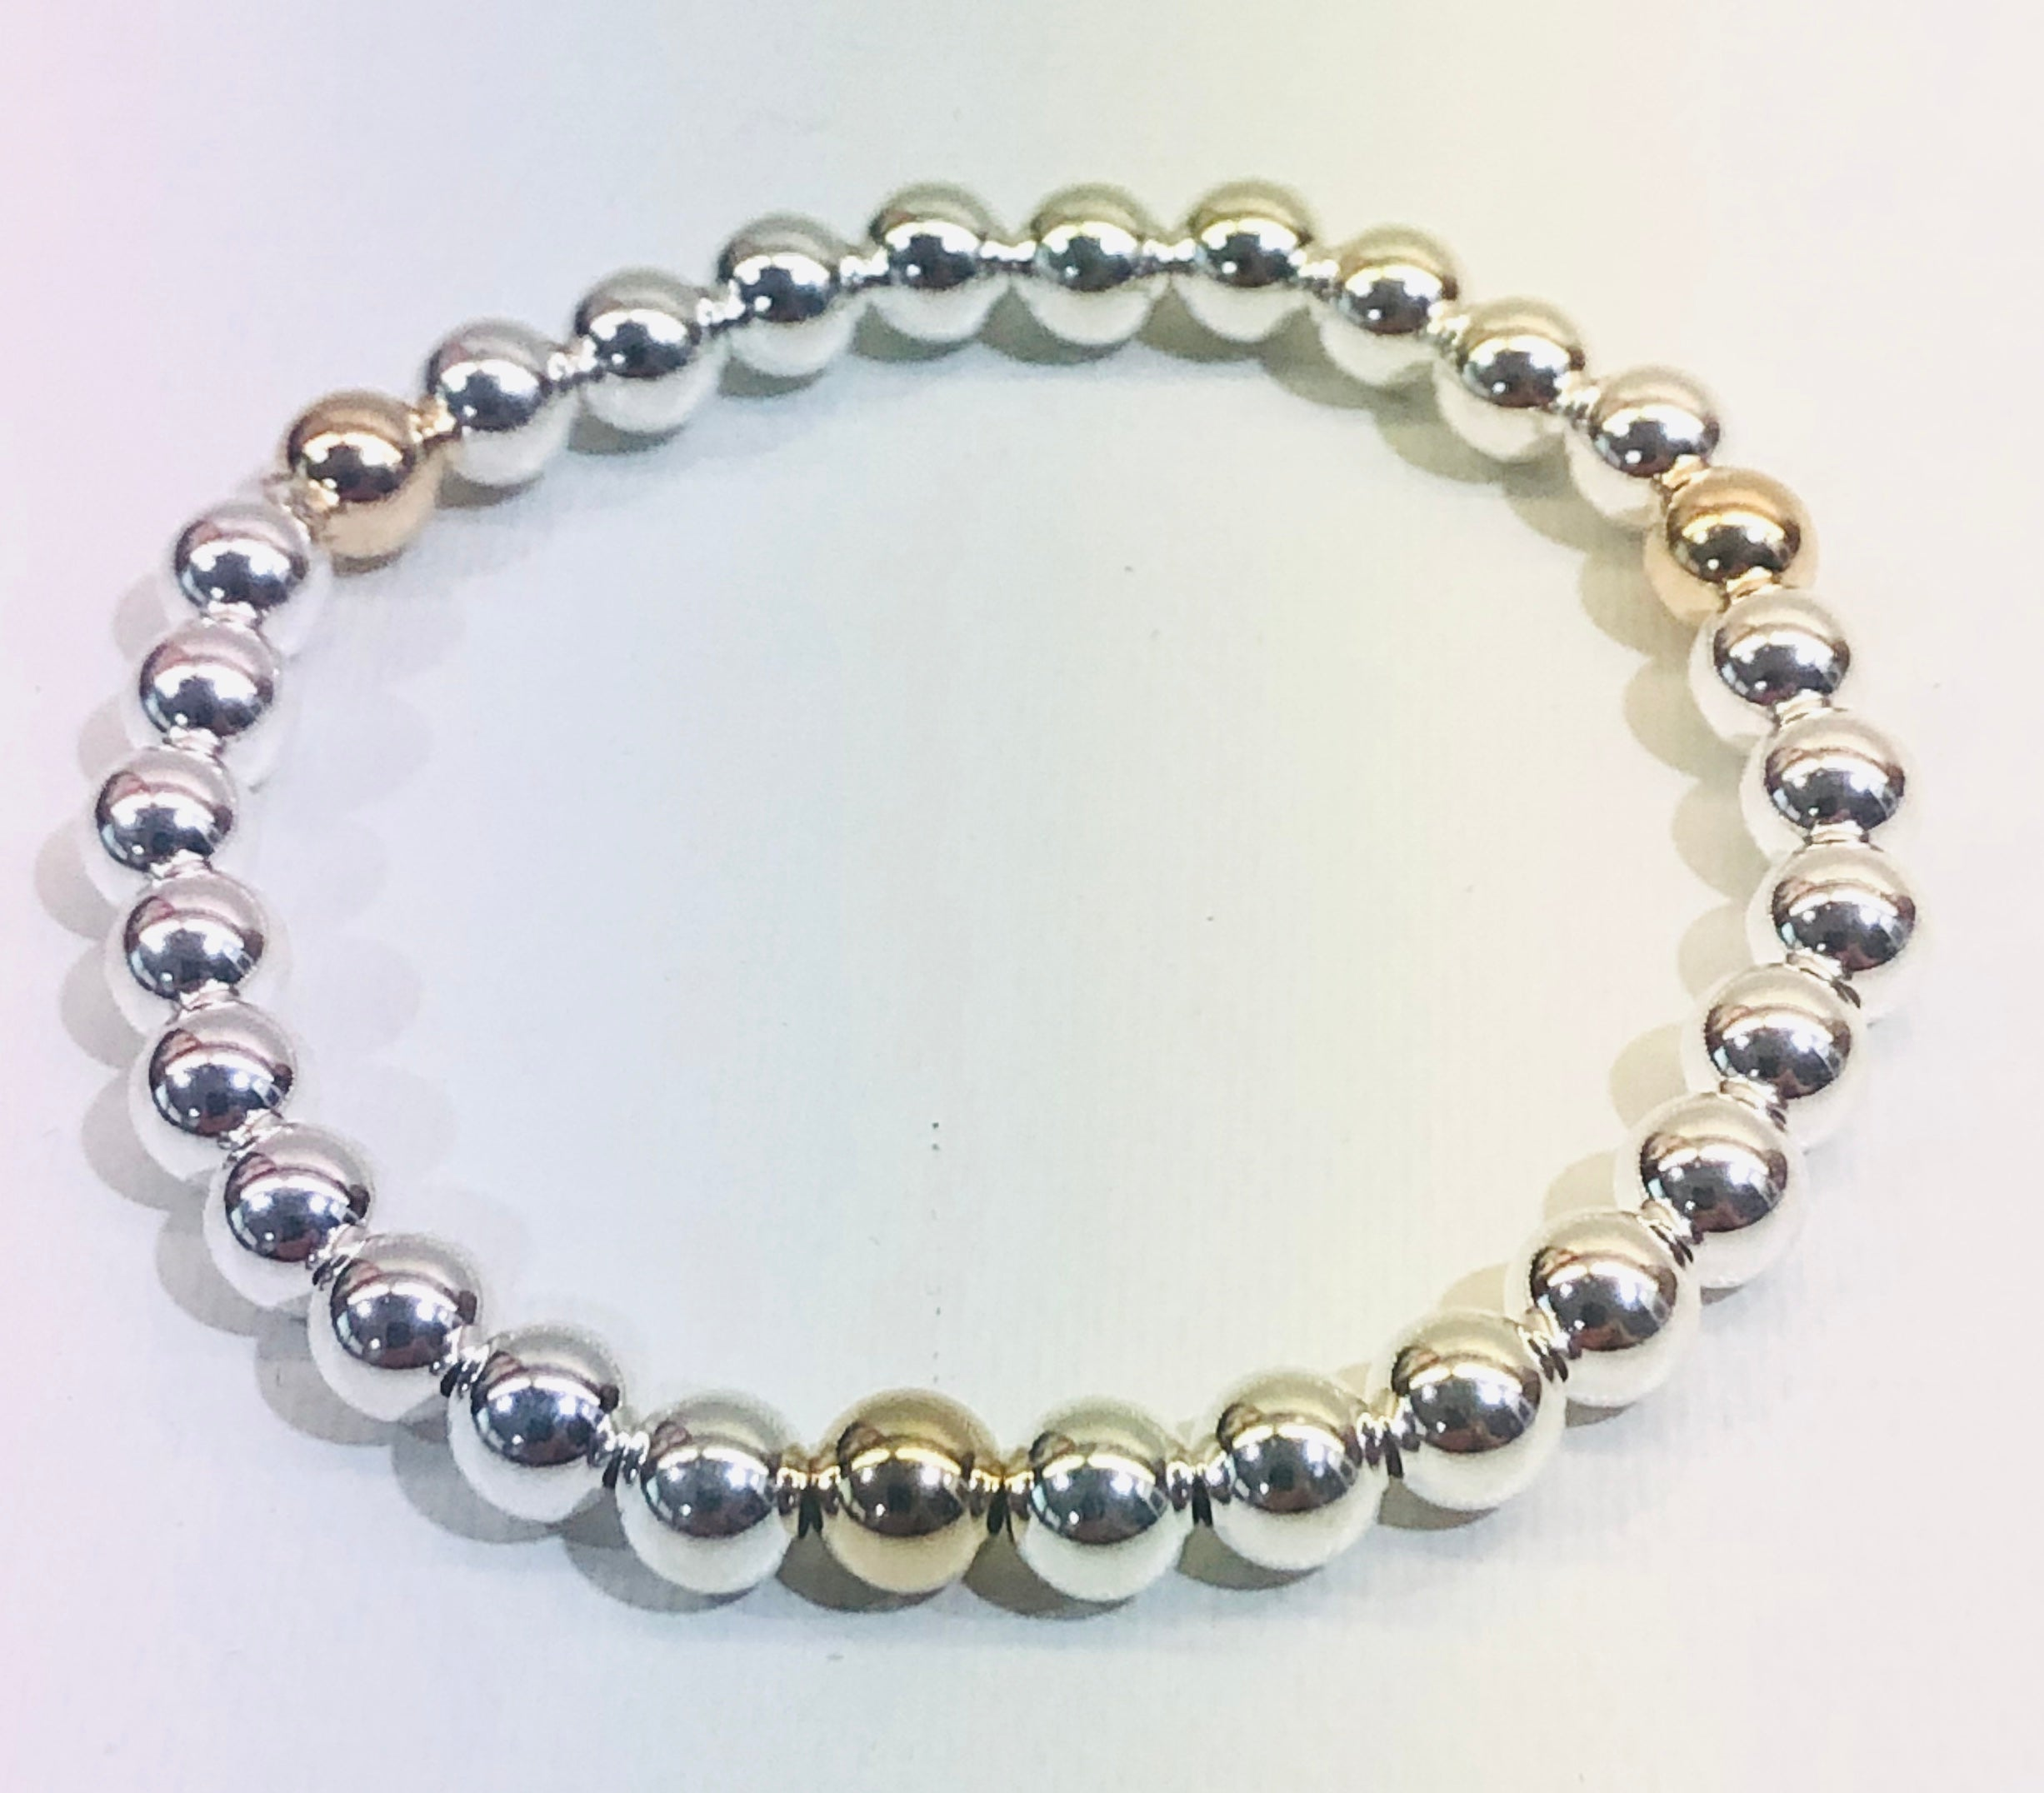 6mm Sterling Silver Bracelet with 3 6mm 14kt Gold Filled Beads